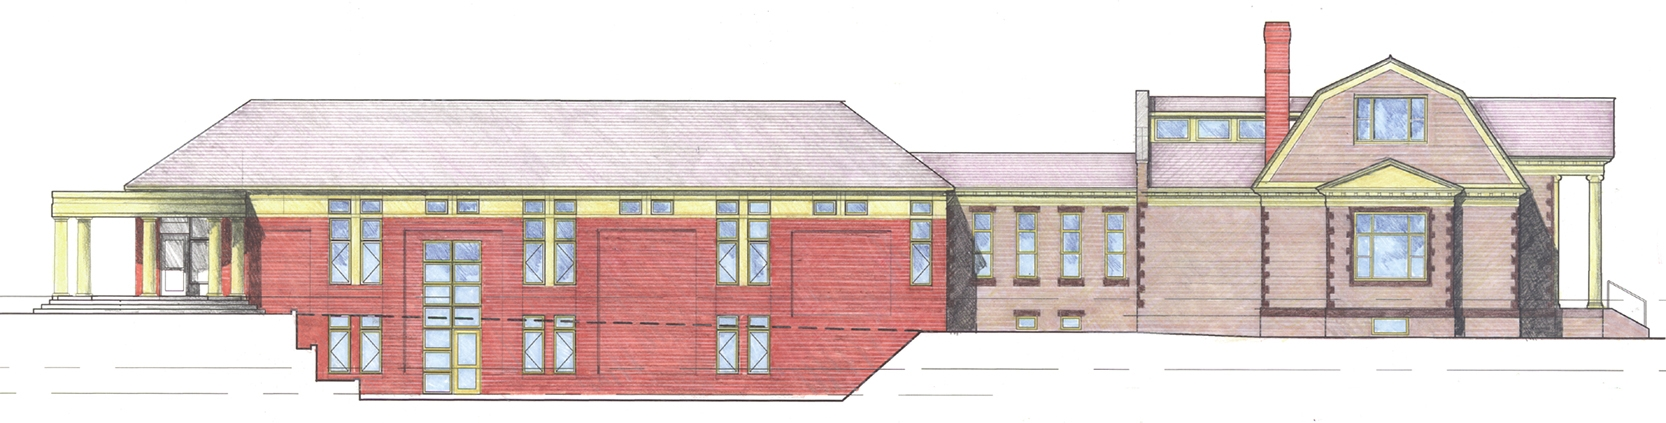 Planning elevation, south side of Baxter Memorial Library, Gorham, Maine